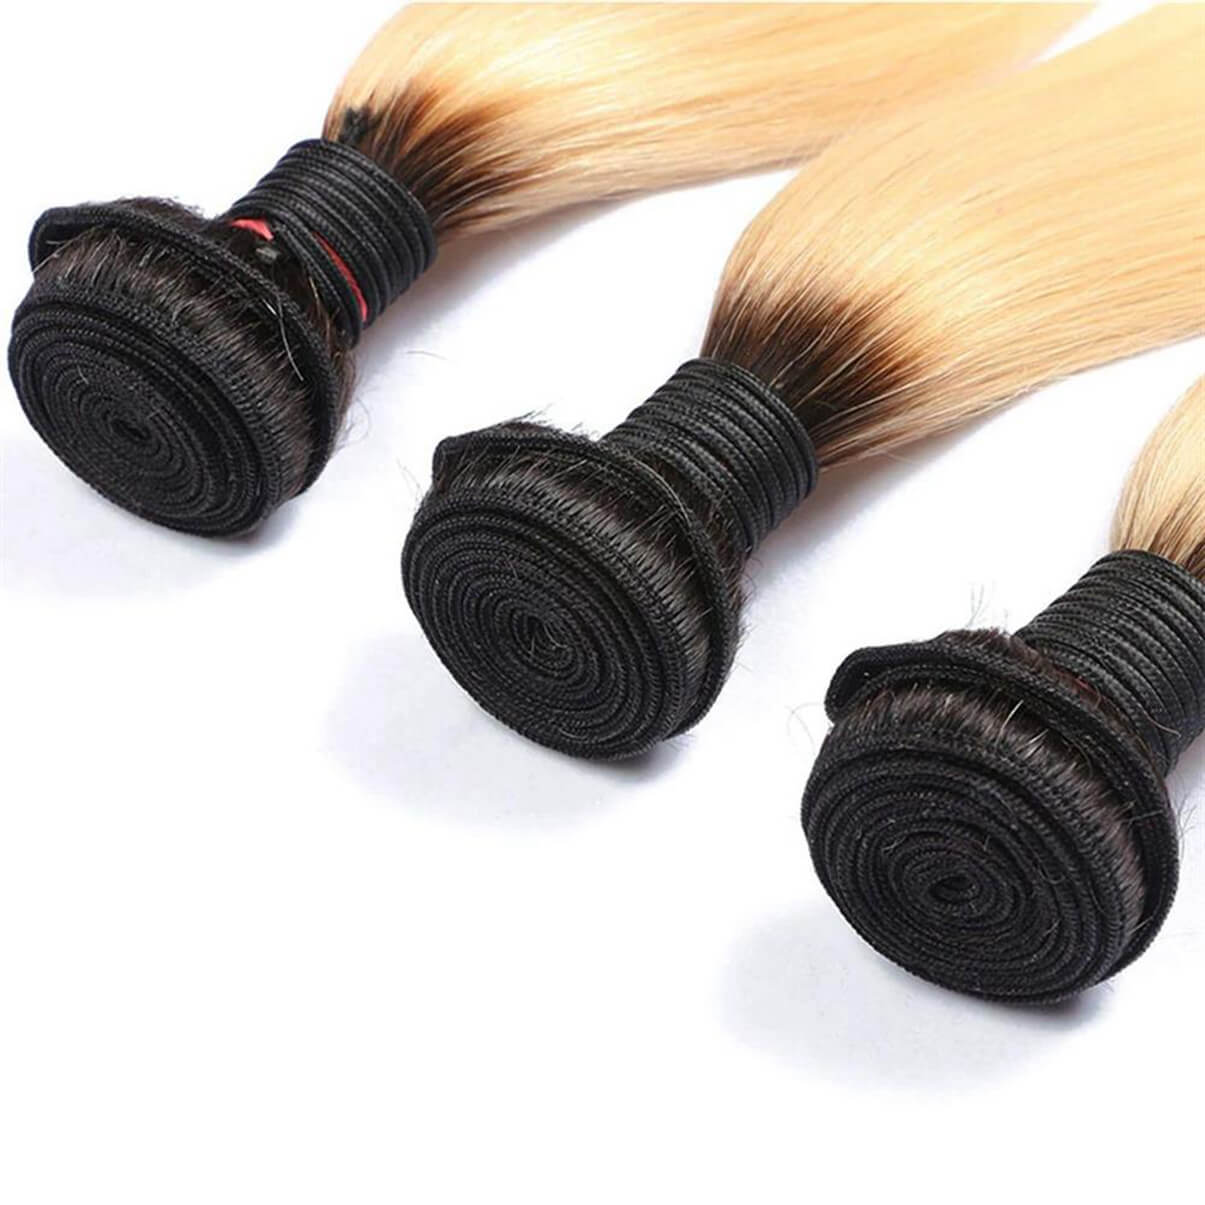 Lakihair 8A Brazilian Virgin Human Hair 1 Pcs Straight Hair 1B/613 Blonde Hair Weaving